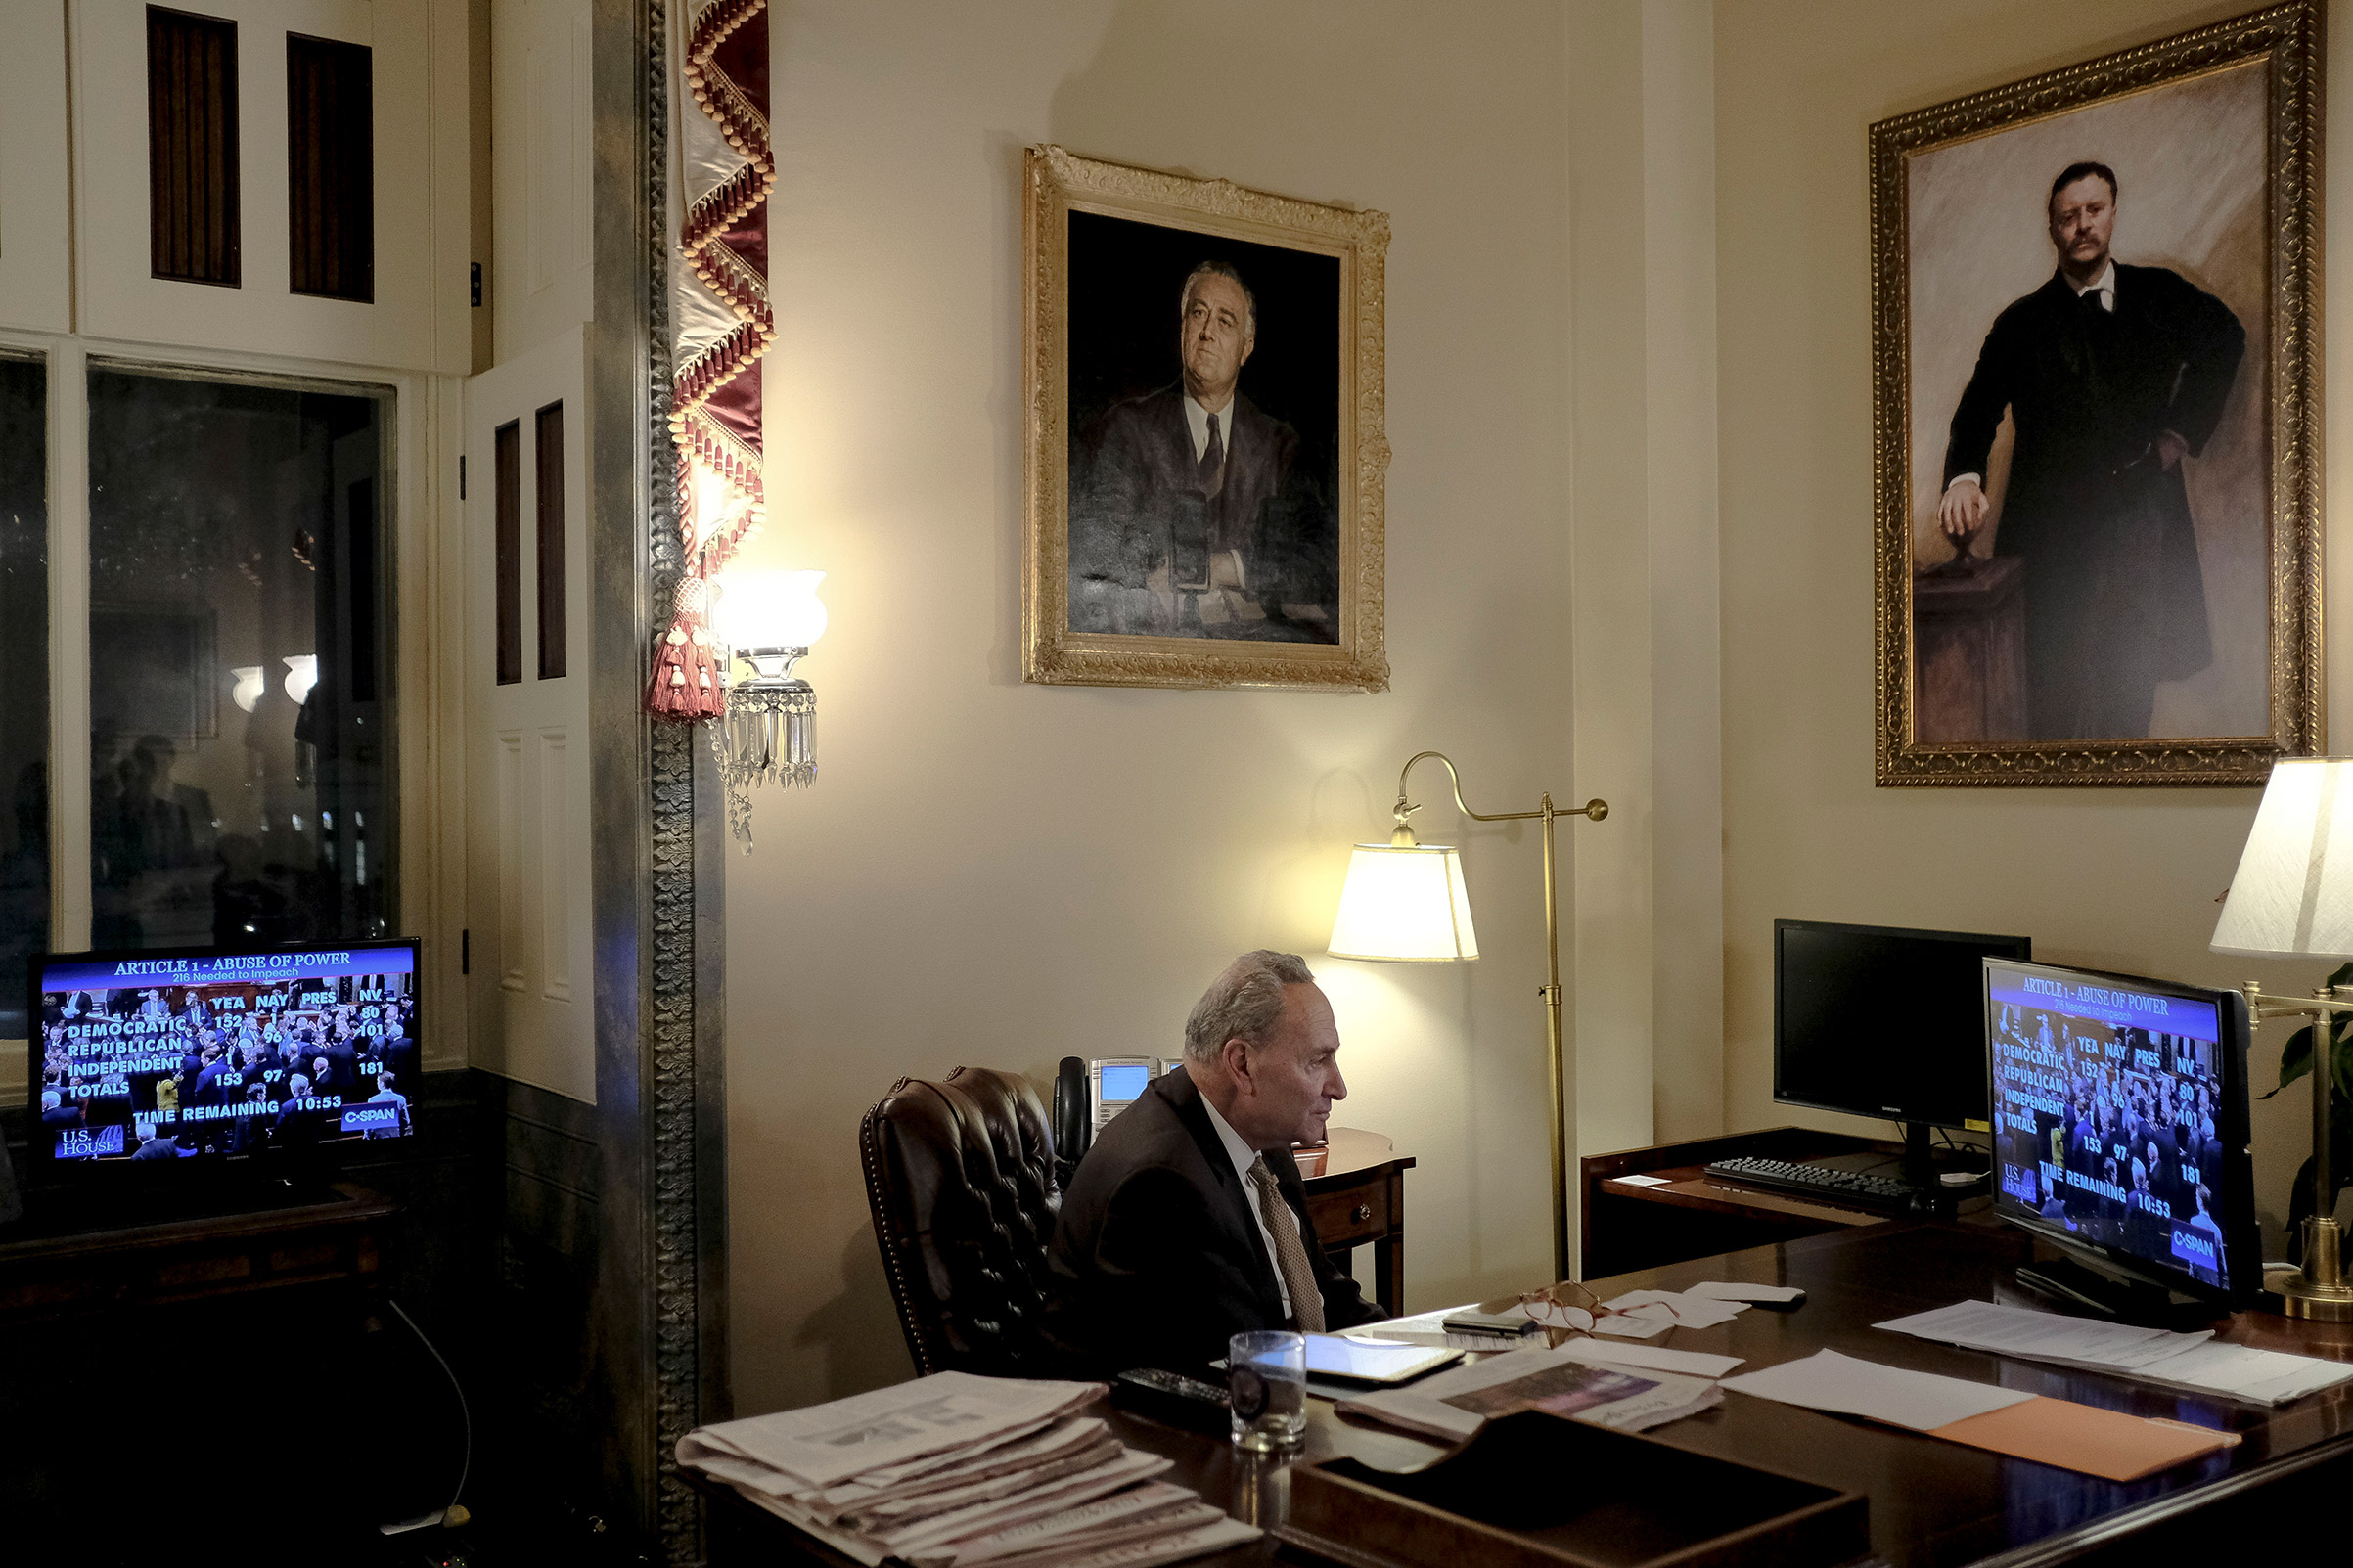 Senate Minority Leader Sen. Chuck Schumer of N.Y., watches the House vote on articles of impeachment in his office at the Capitol in Washington, D.C. on Dec. 18, 2019.